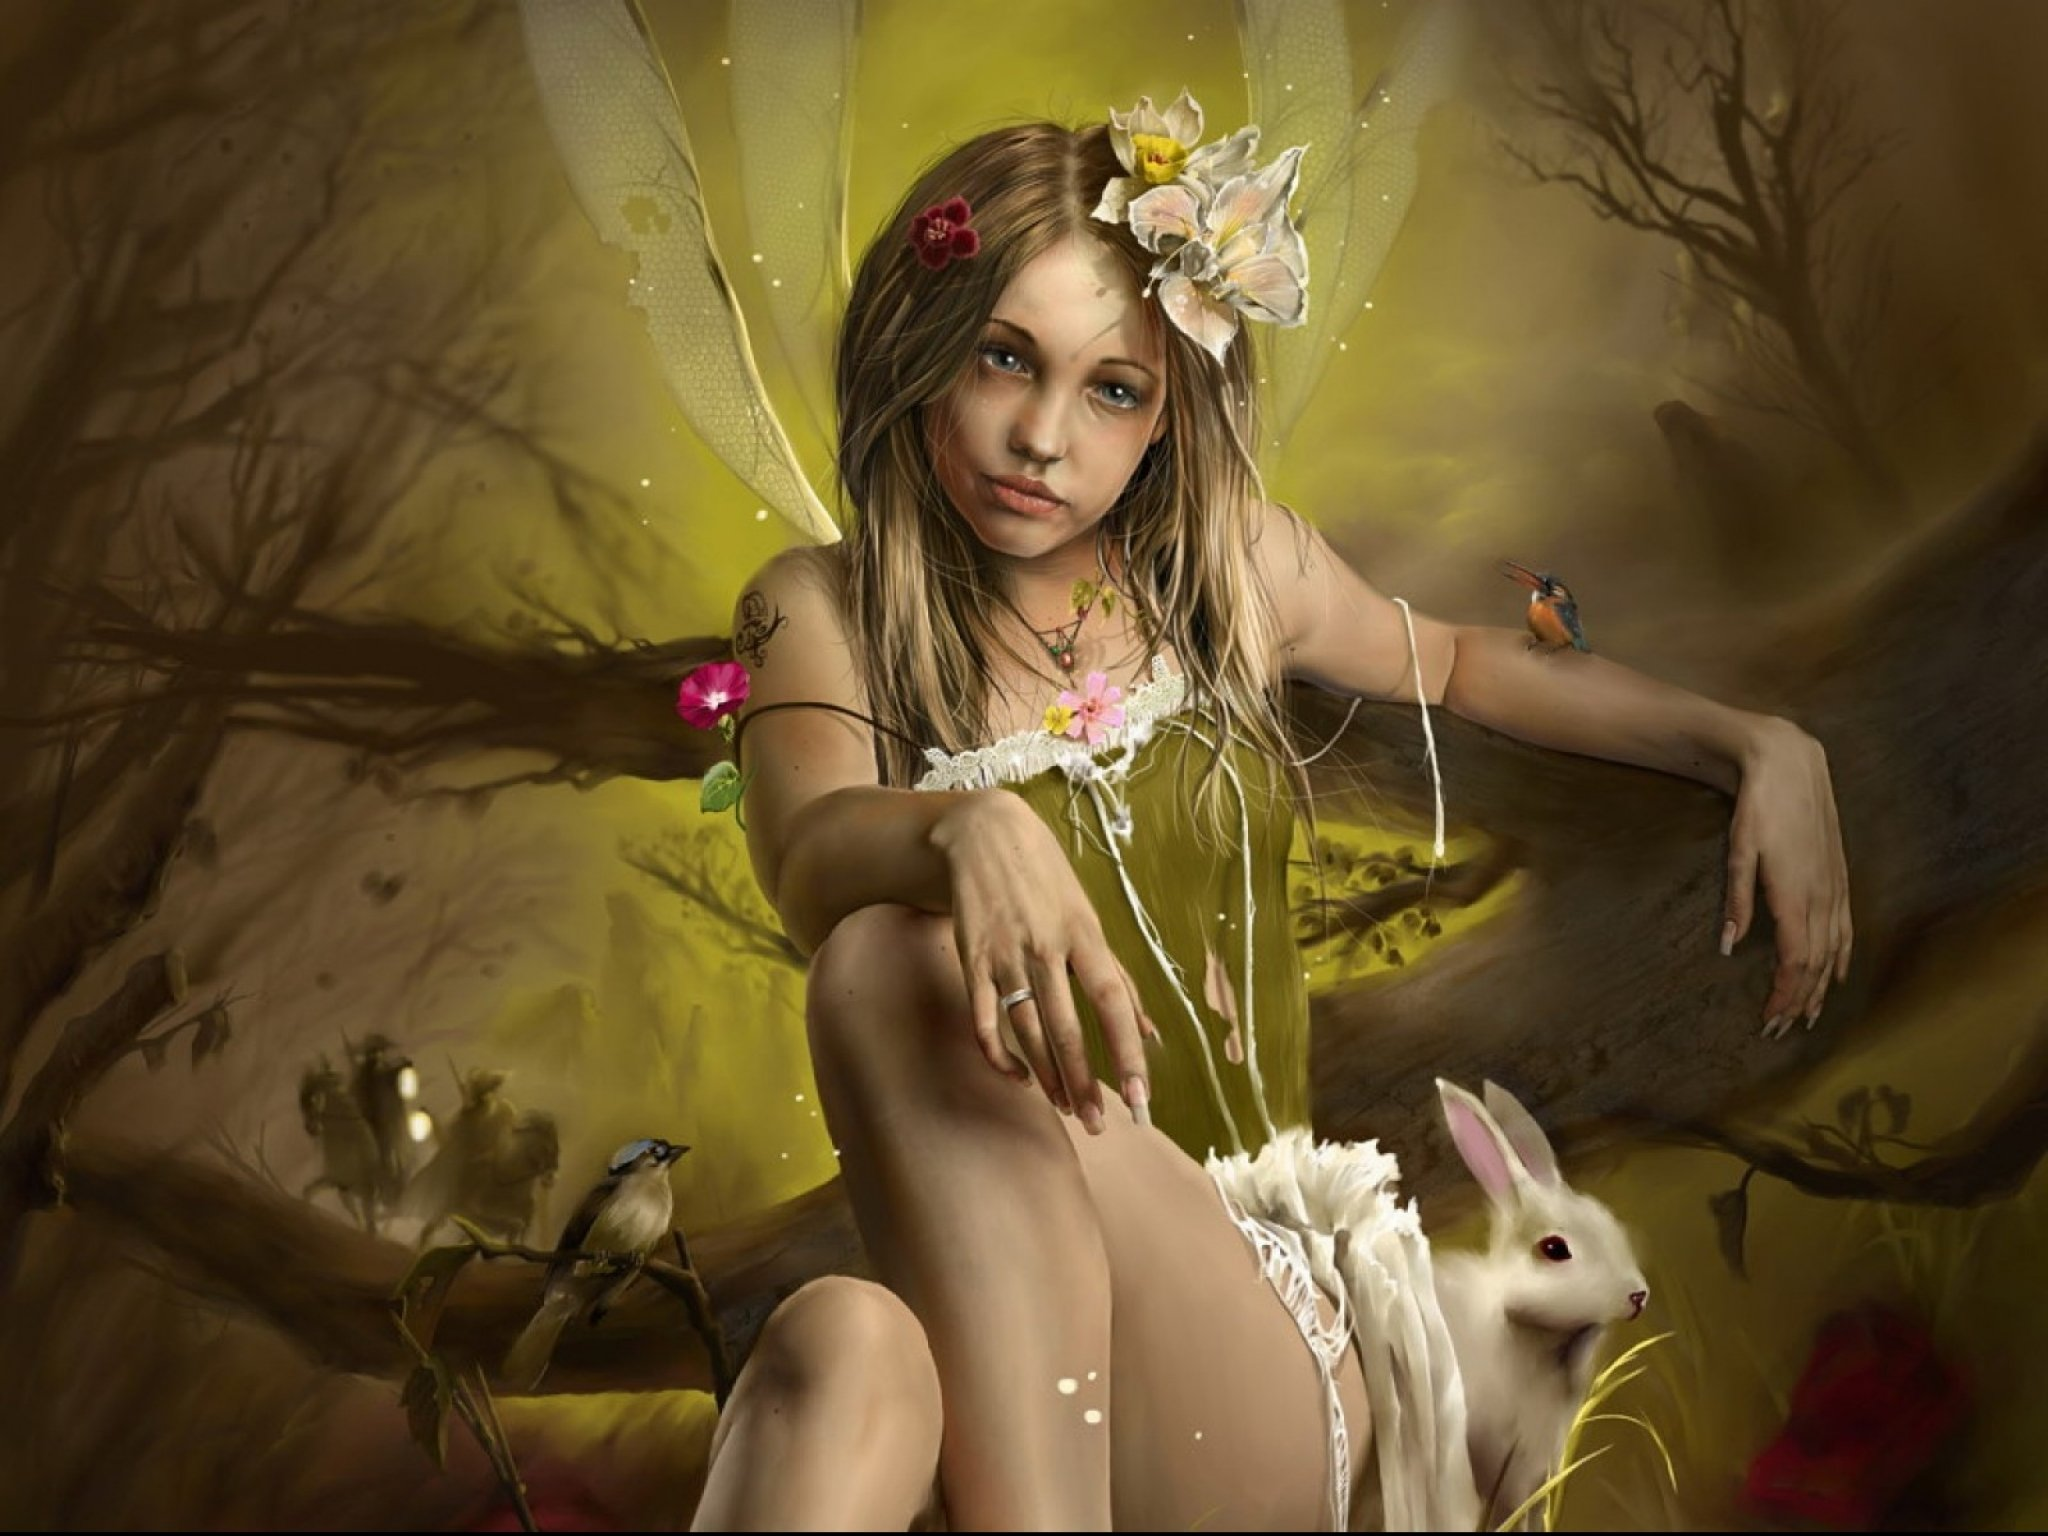 girl from a fairy - photo #8